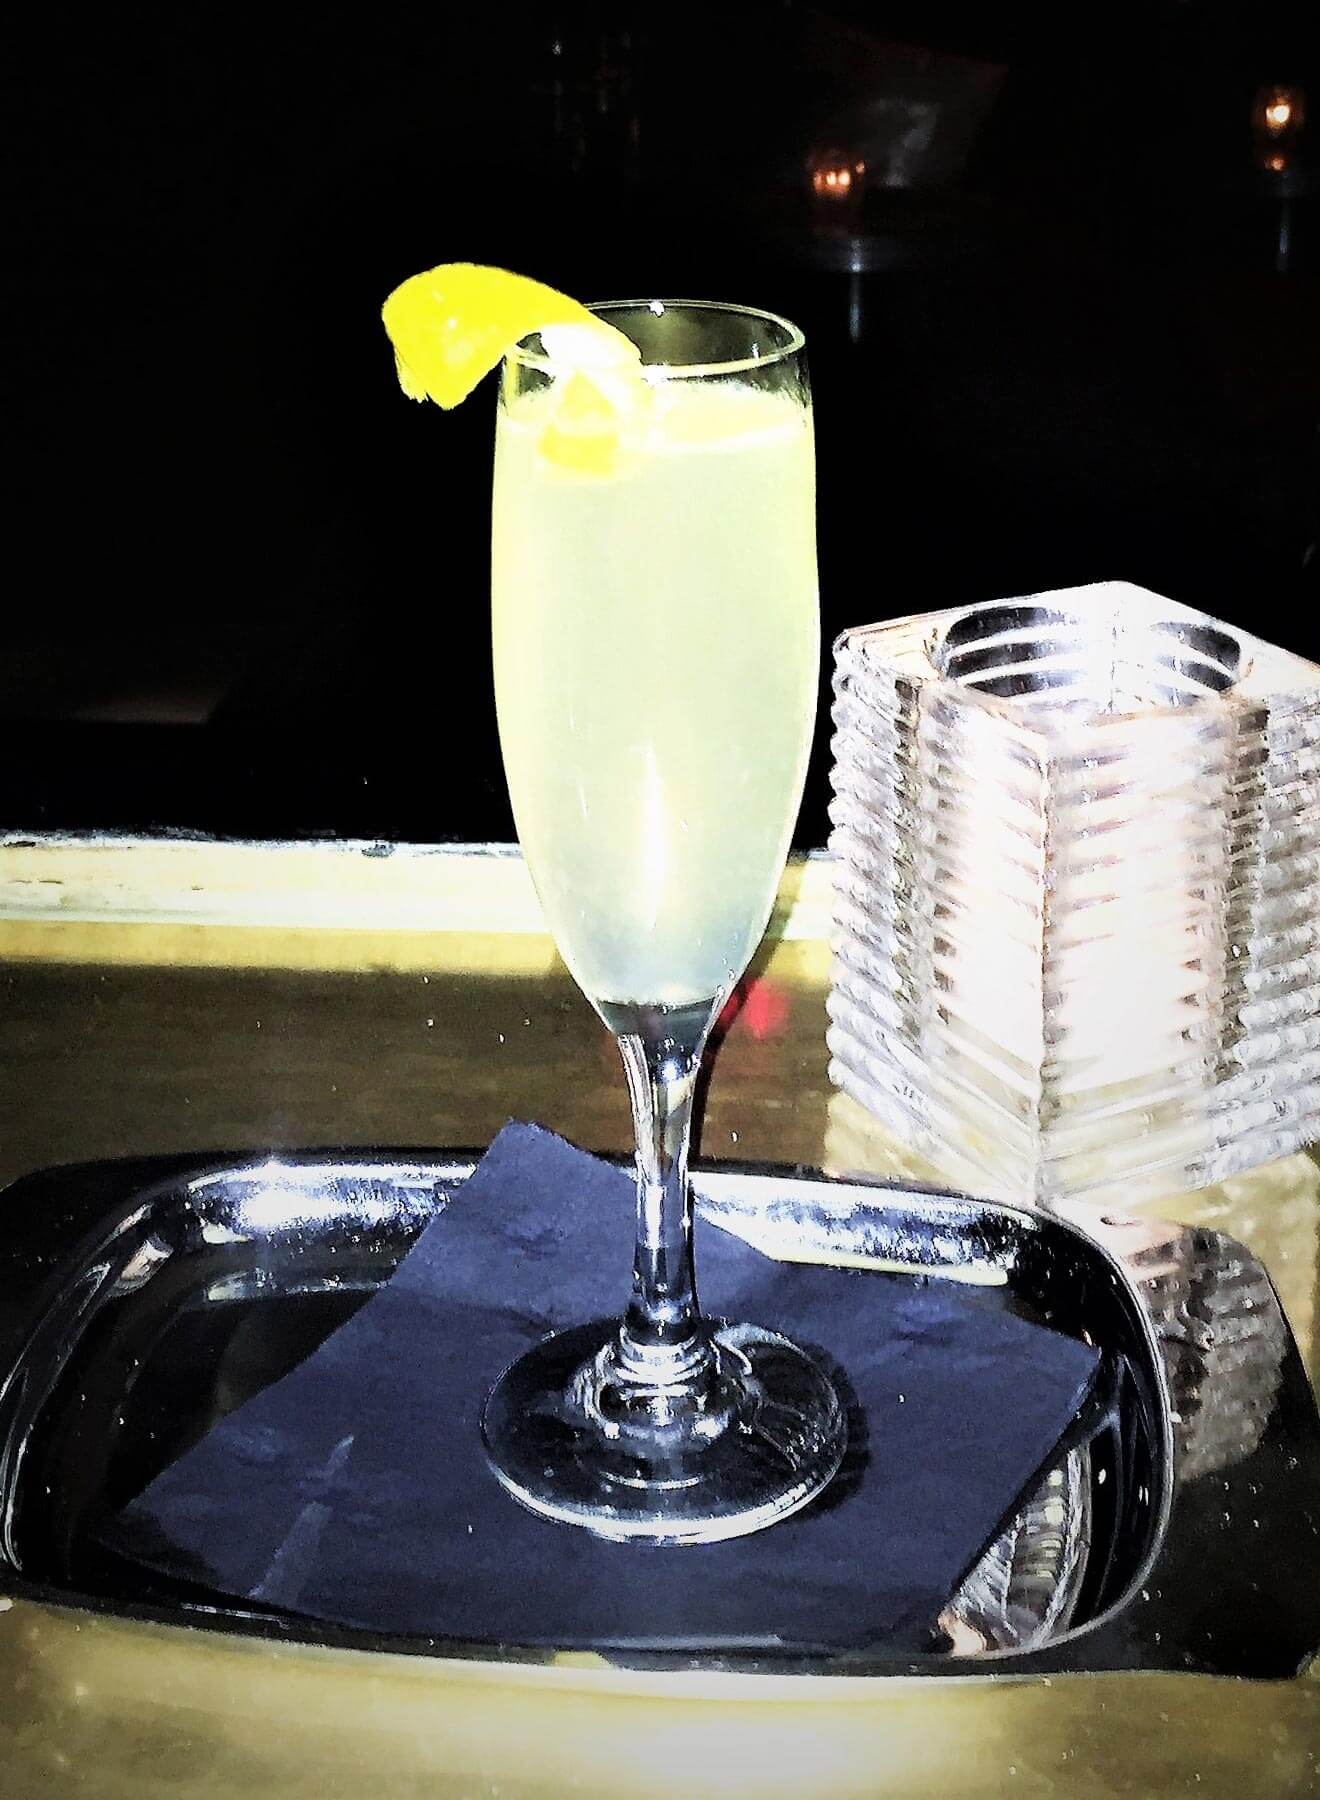 skinny 75 cocktail with garnish on silver tray